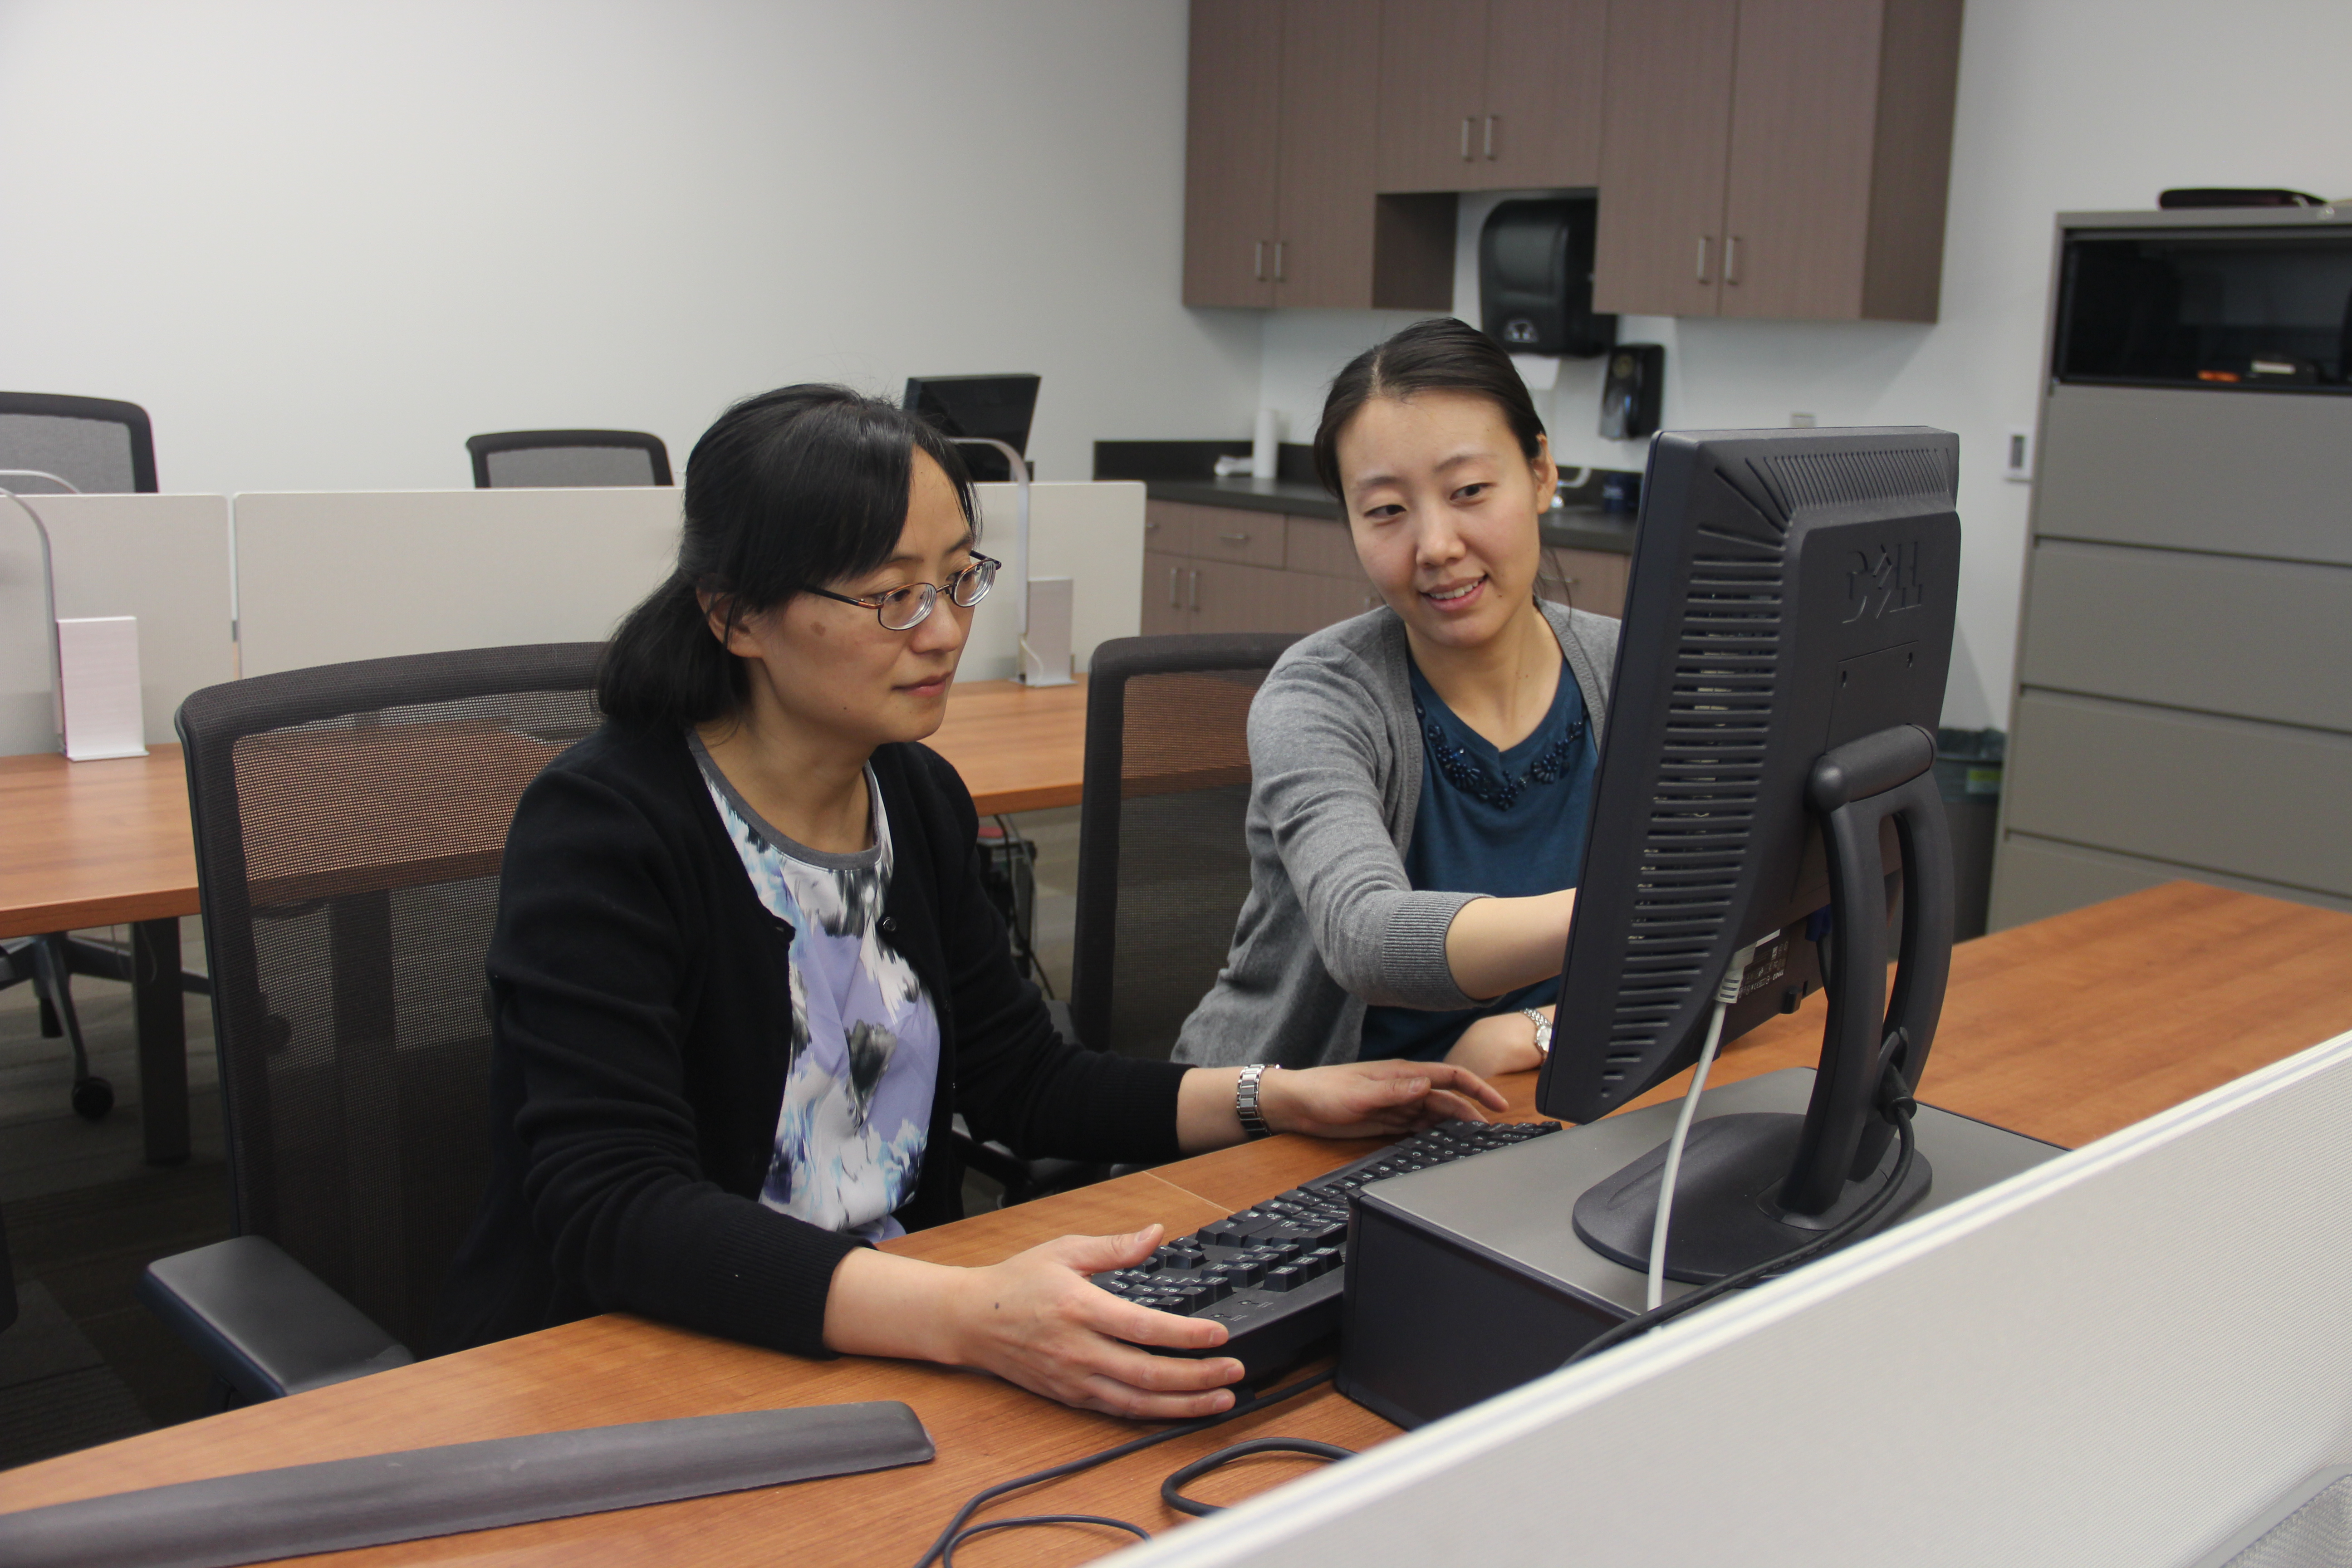 In this photo Yu Du and a friend are in a lab togehter sharing a computer screen. Her friend points to a detail on the screen as Yu looks on.